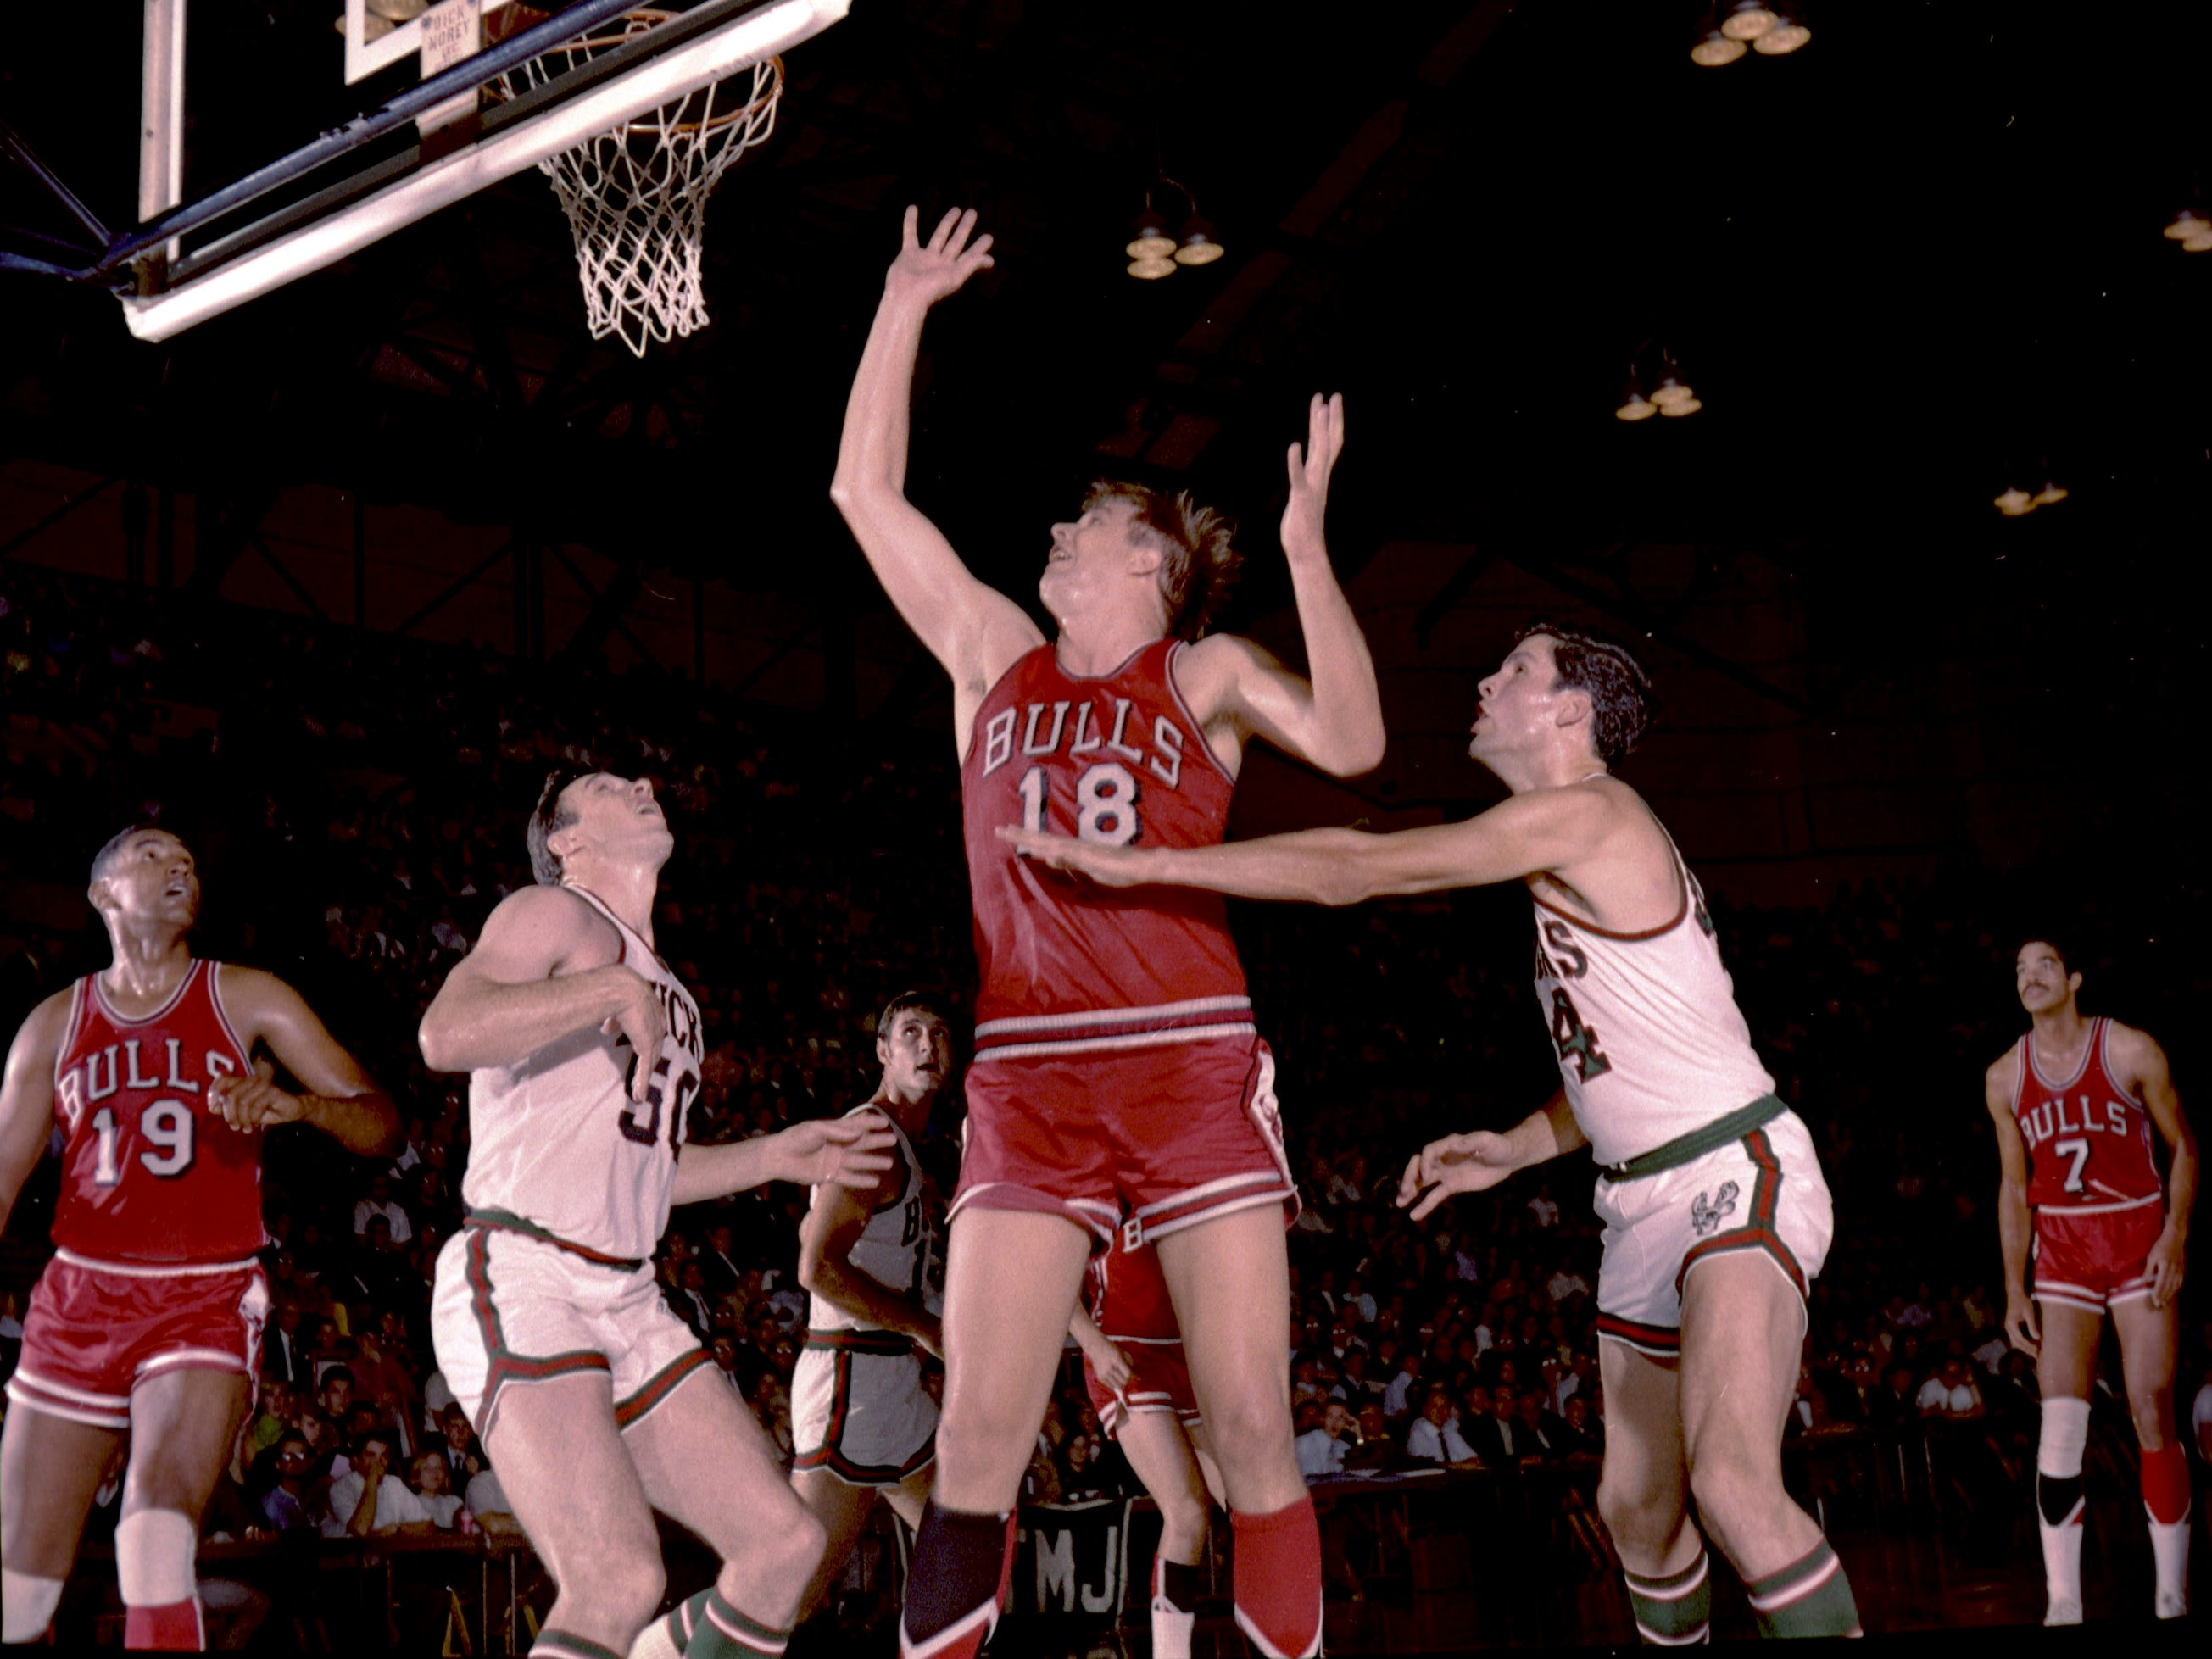 Chicago Bulls center Tom Boerwinkle (18) tosses in a shot against Milwaukee in the Bucks' first game as an NBA franchise on Oct. 16, 1968, at the Milwaukee Arena. Also under the basket are the Bulls' Bob Boozer (19), the Bucks' Len Chappell (50) and Fred Hetzel (44). The Bucks lost, 89-84.